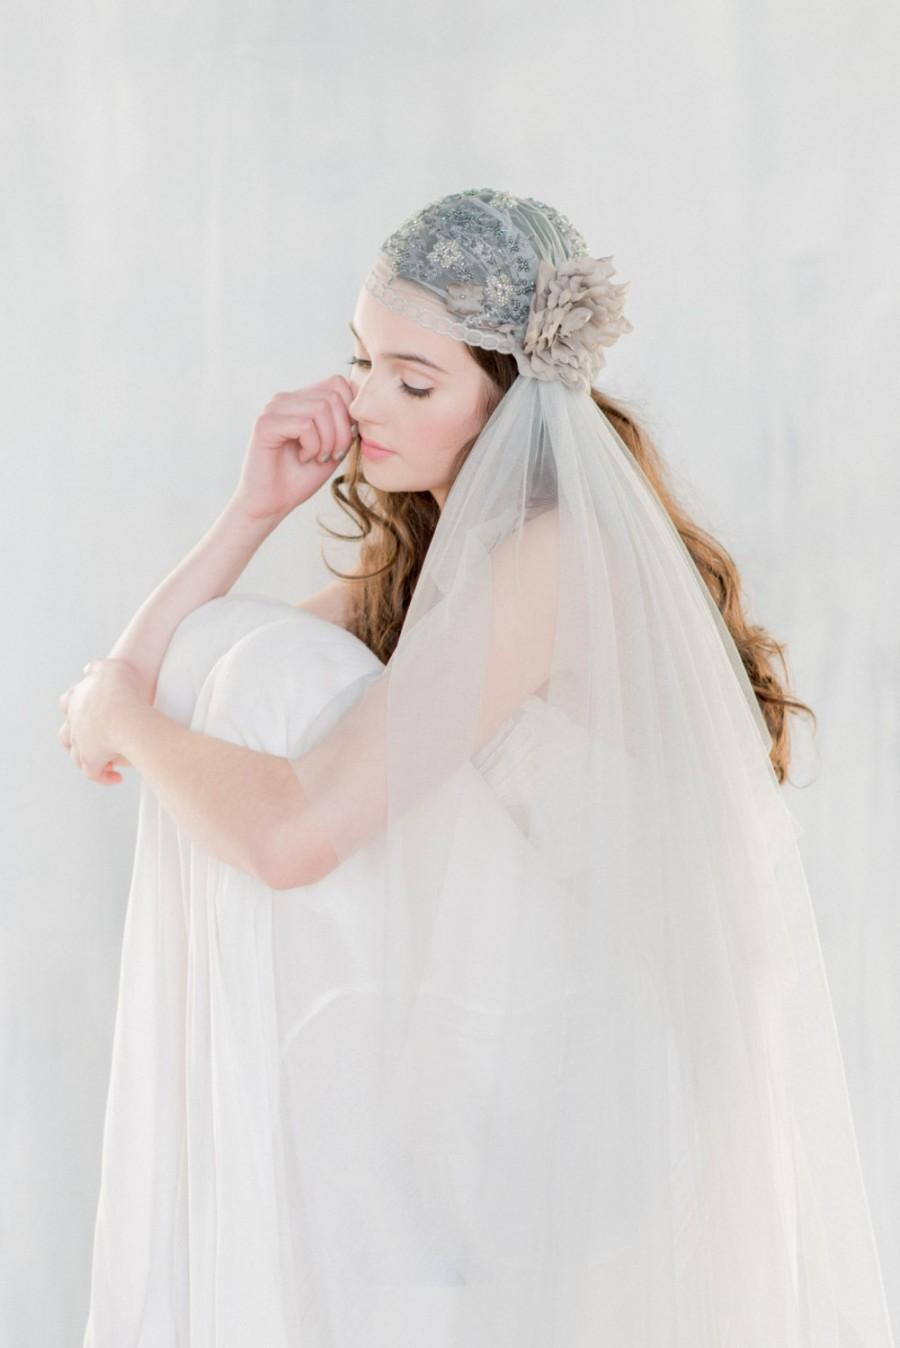 Mariage - Grey Juliet Veil, Lace Wedding Veil, Embroidered Veil, Gray Veil, Floral Veil, Lace Veil, Lace Juliet Veil, Beaded Wedding Veil, LUCIENNE